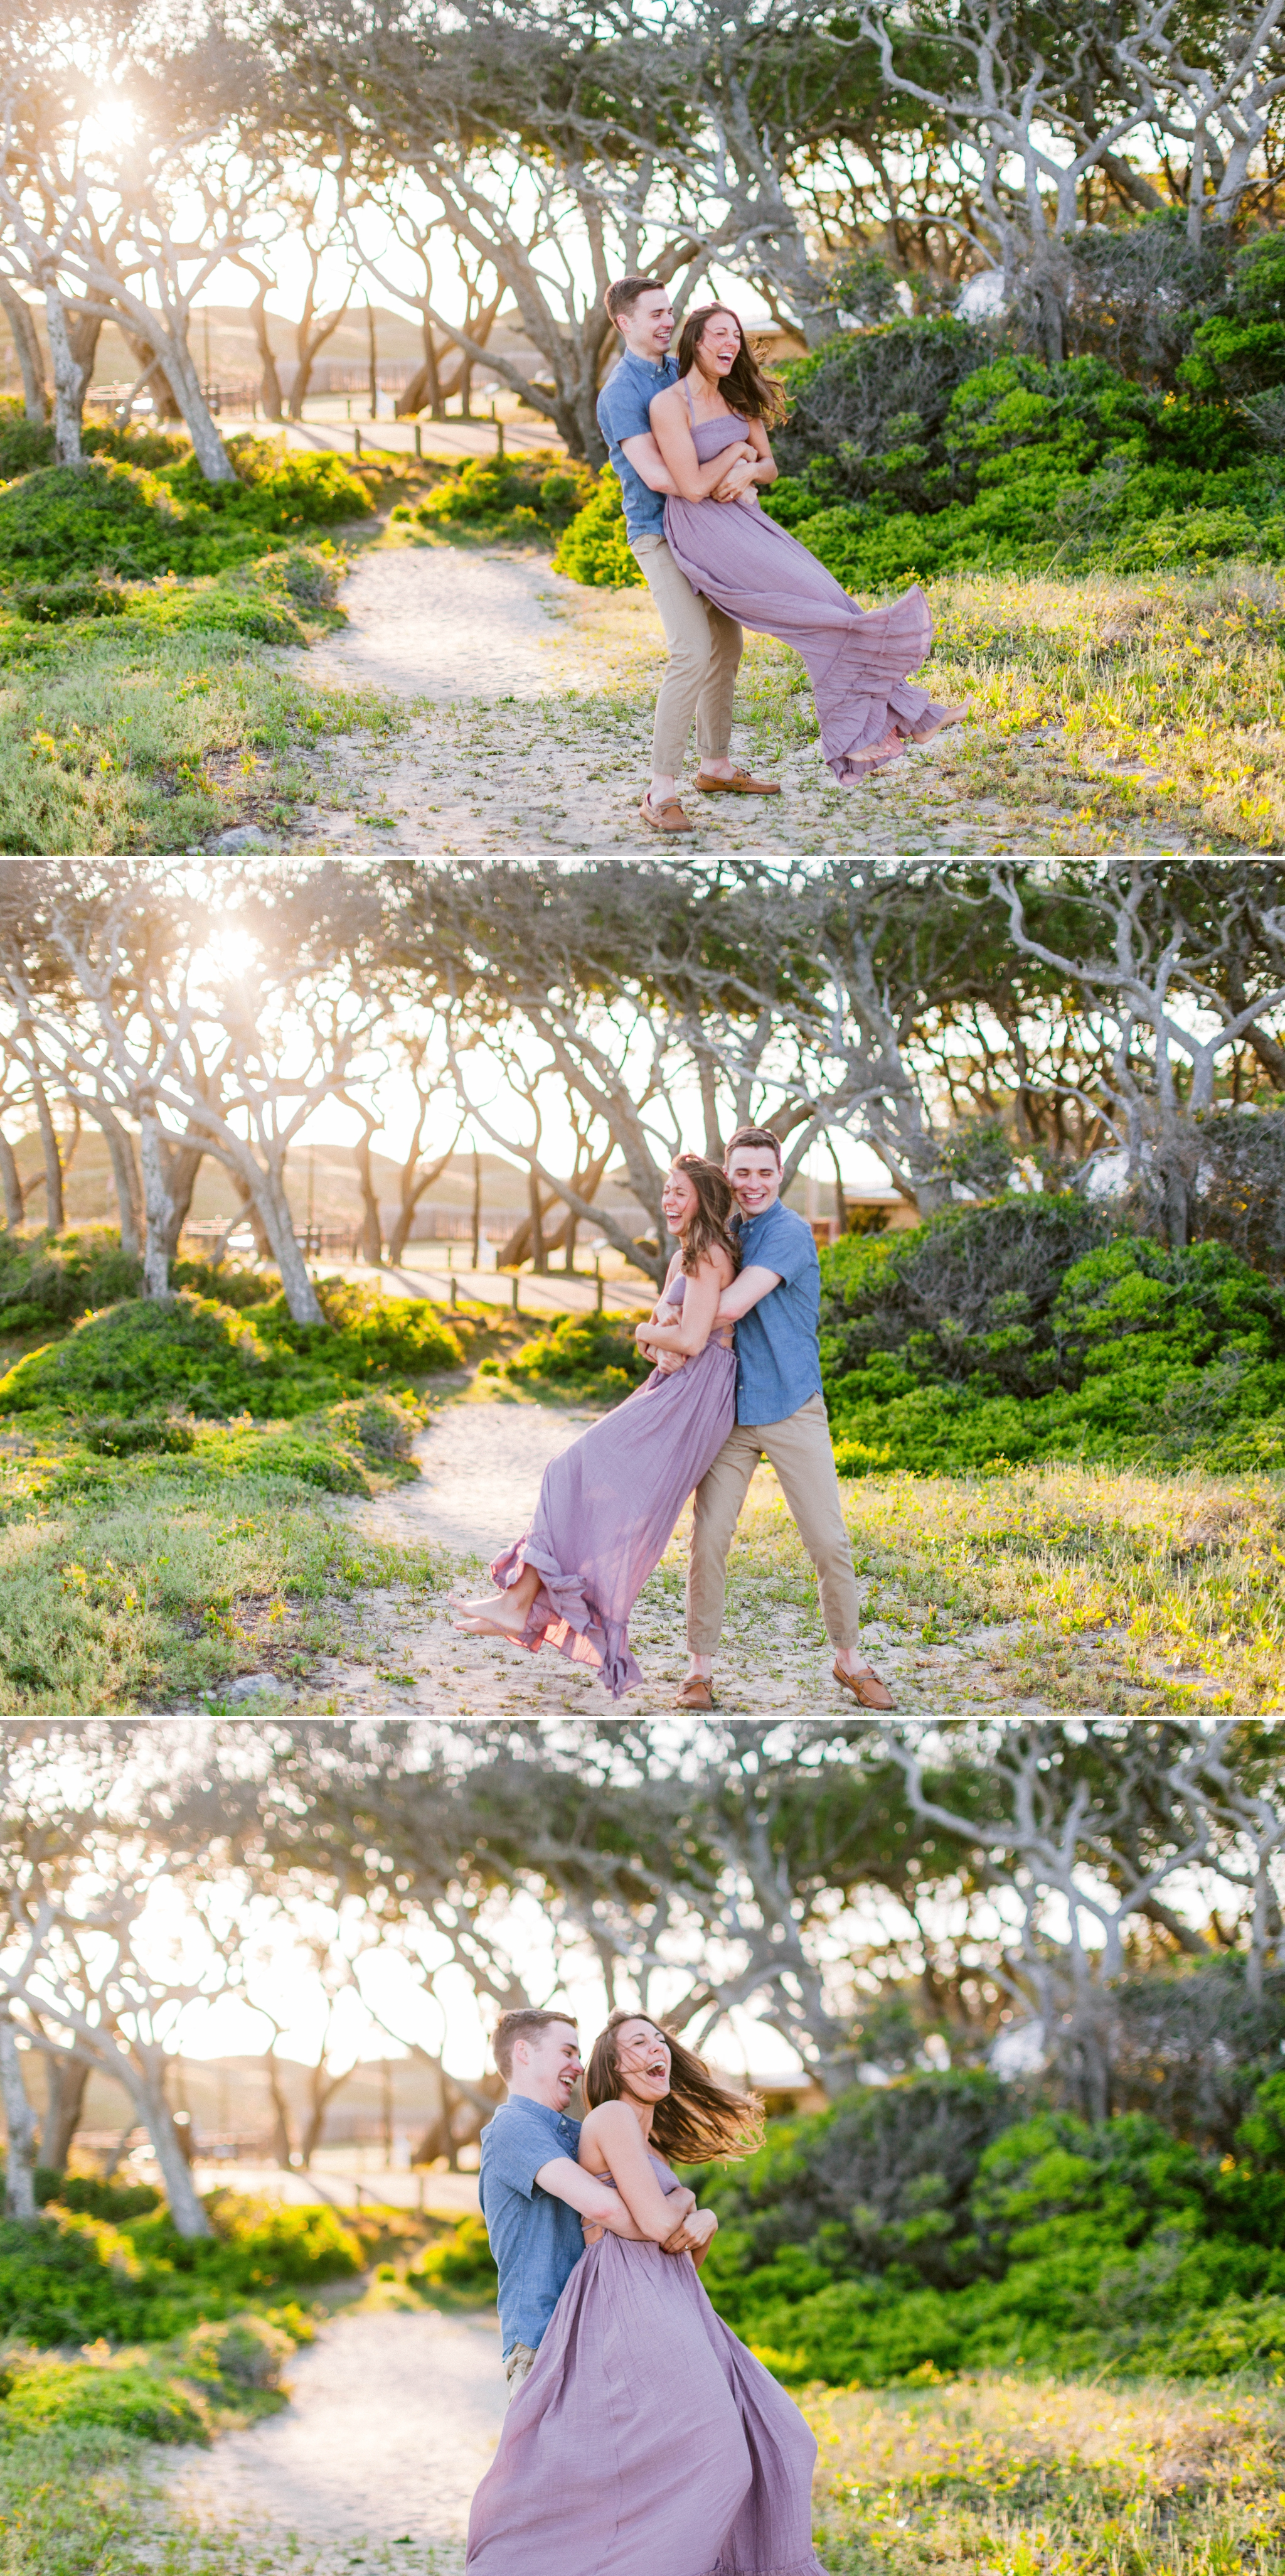 Guy dancing with girl in front of live oak trees with the sunset behind them - Woman is in a flowy pastel maxi dress - unposed and candid outdoor golden light session - engagement photographer in honolulu, oahu, hawaii - johanna dye